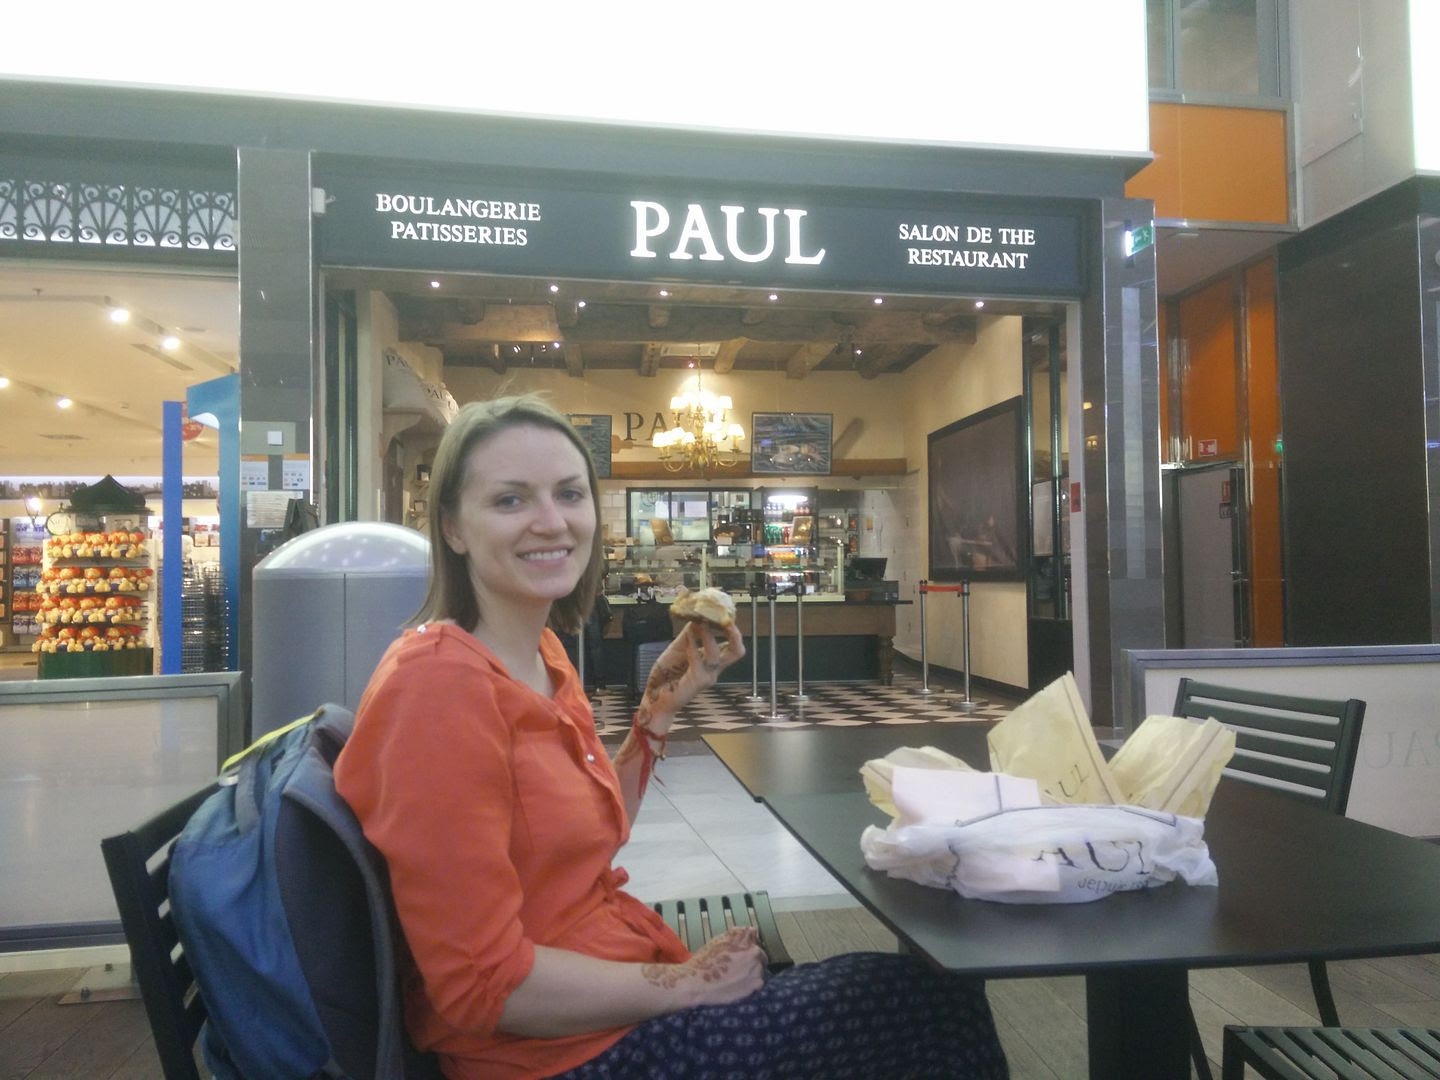 Paul Bakery in Paris Airport photo  IMG_20150516_071751_zps12nhinqg.jpg